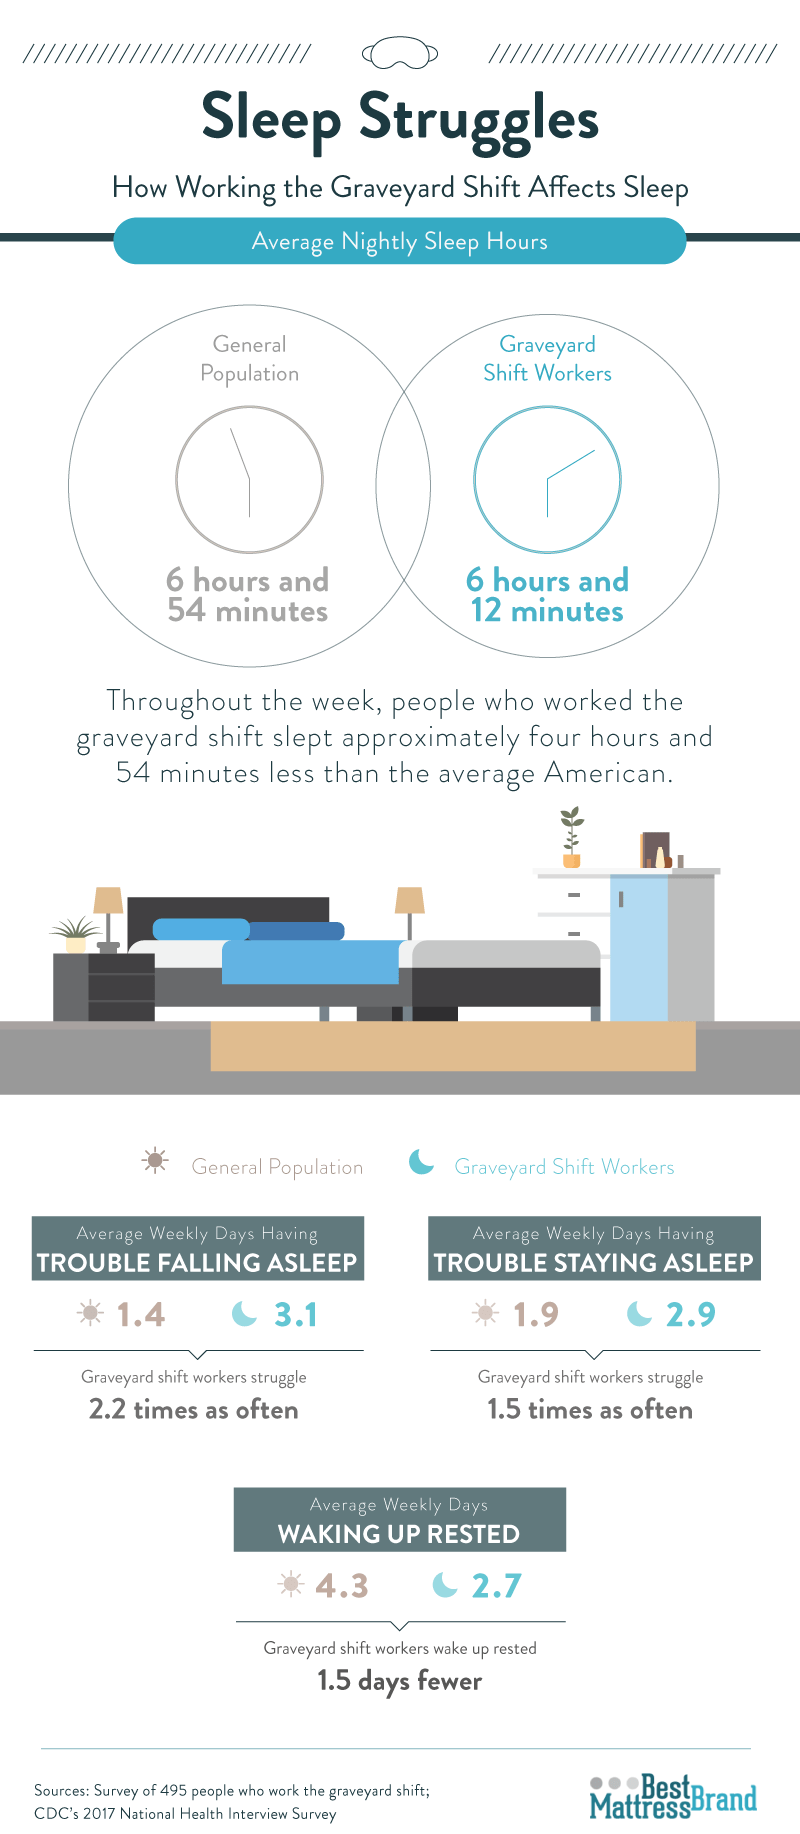 sleep-struggles-how-working-the-graveyard-shift-affects-sleep